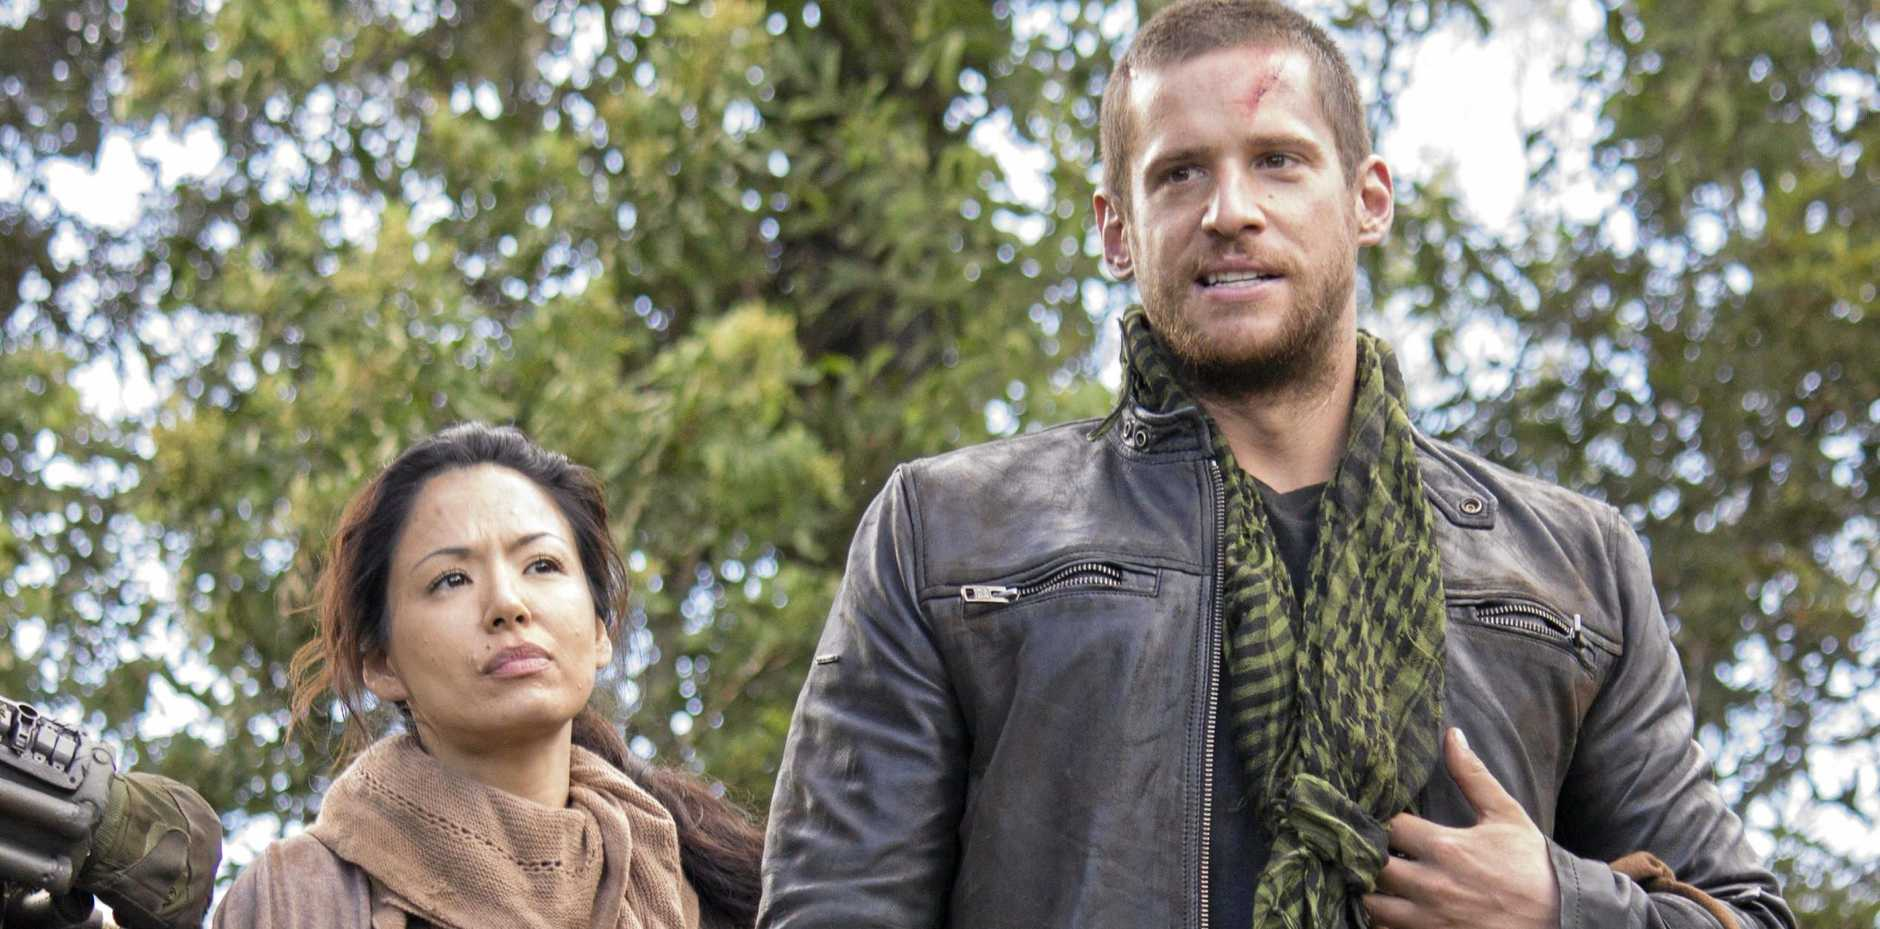 Stephany Jacobsen and Dan Ewing in a scene from the movie Occupation.